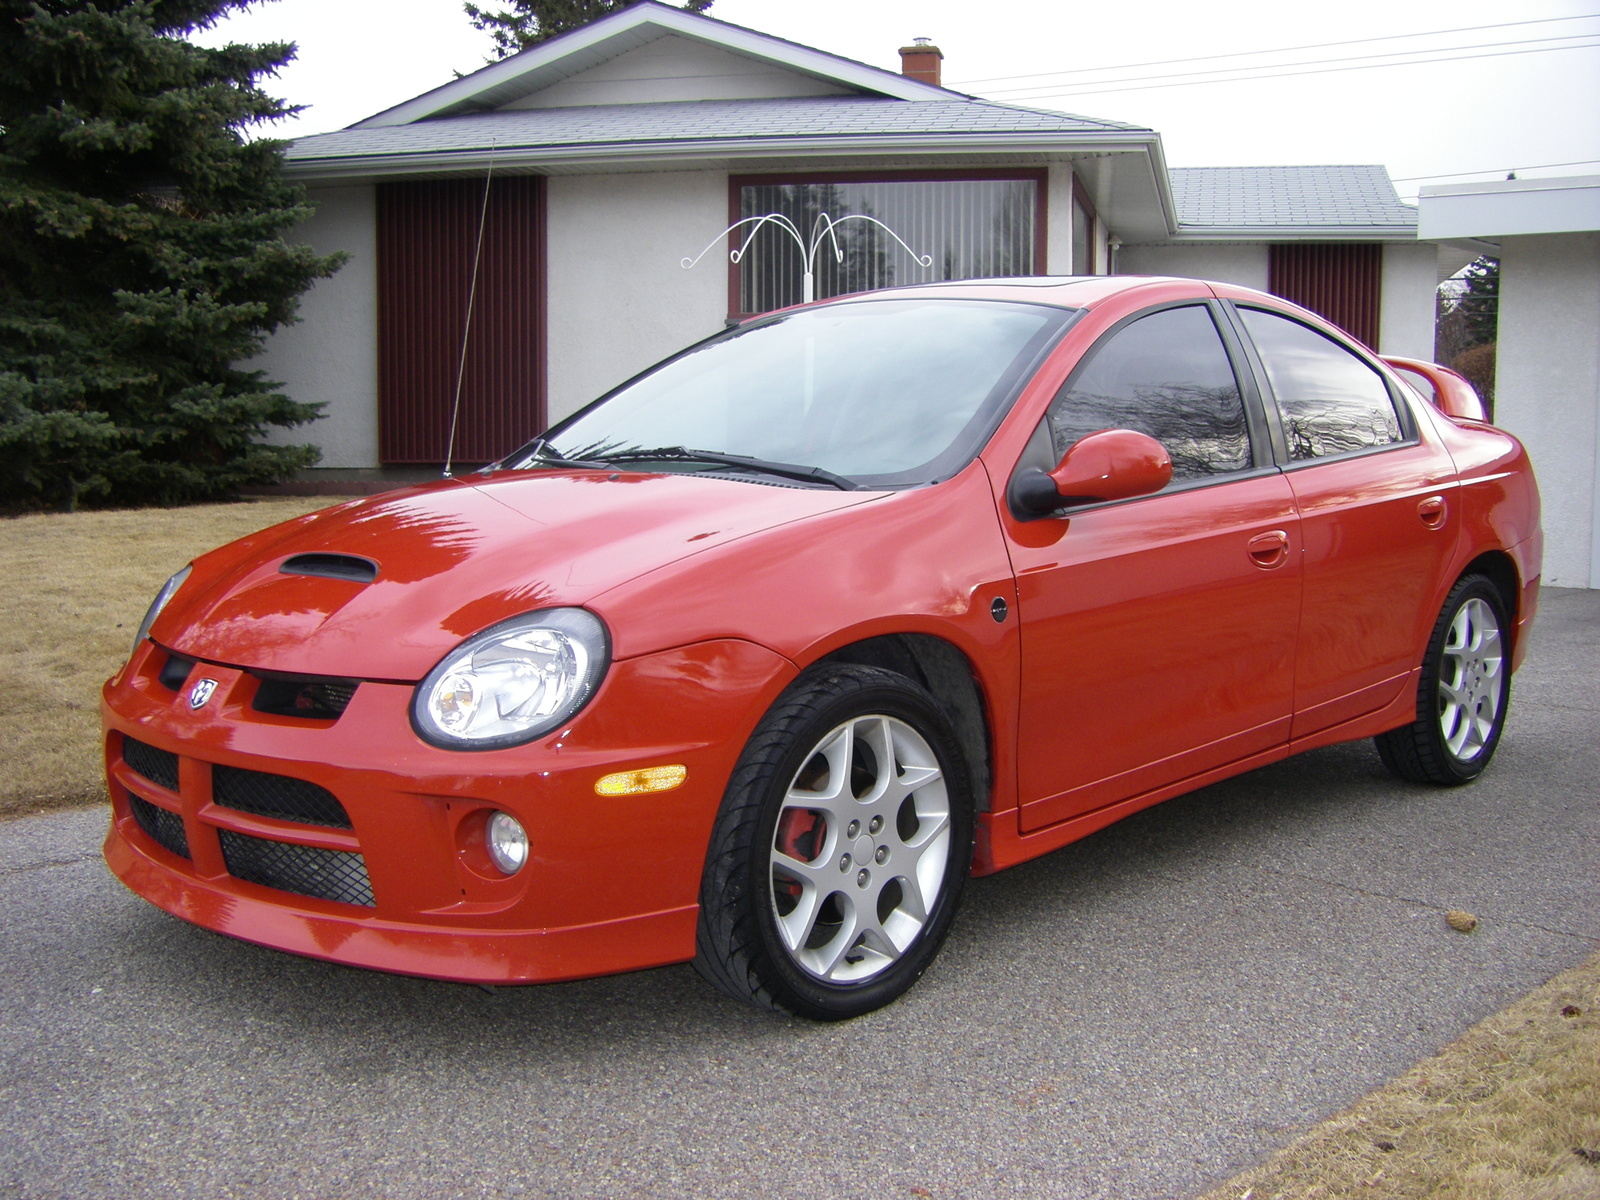 2004 Dodge Neon Srt 4 Overview Cargurus